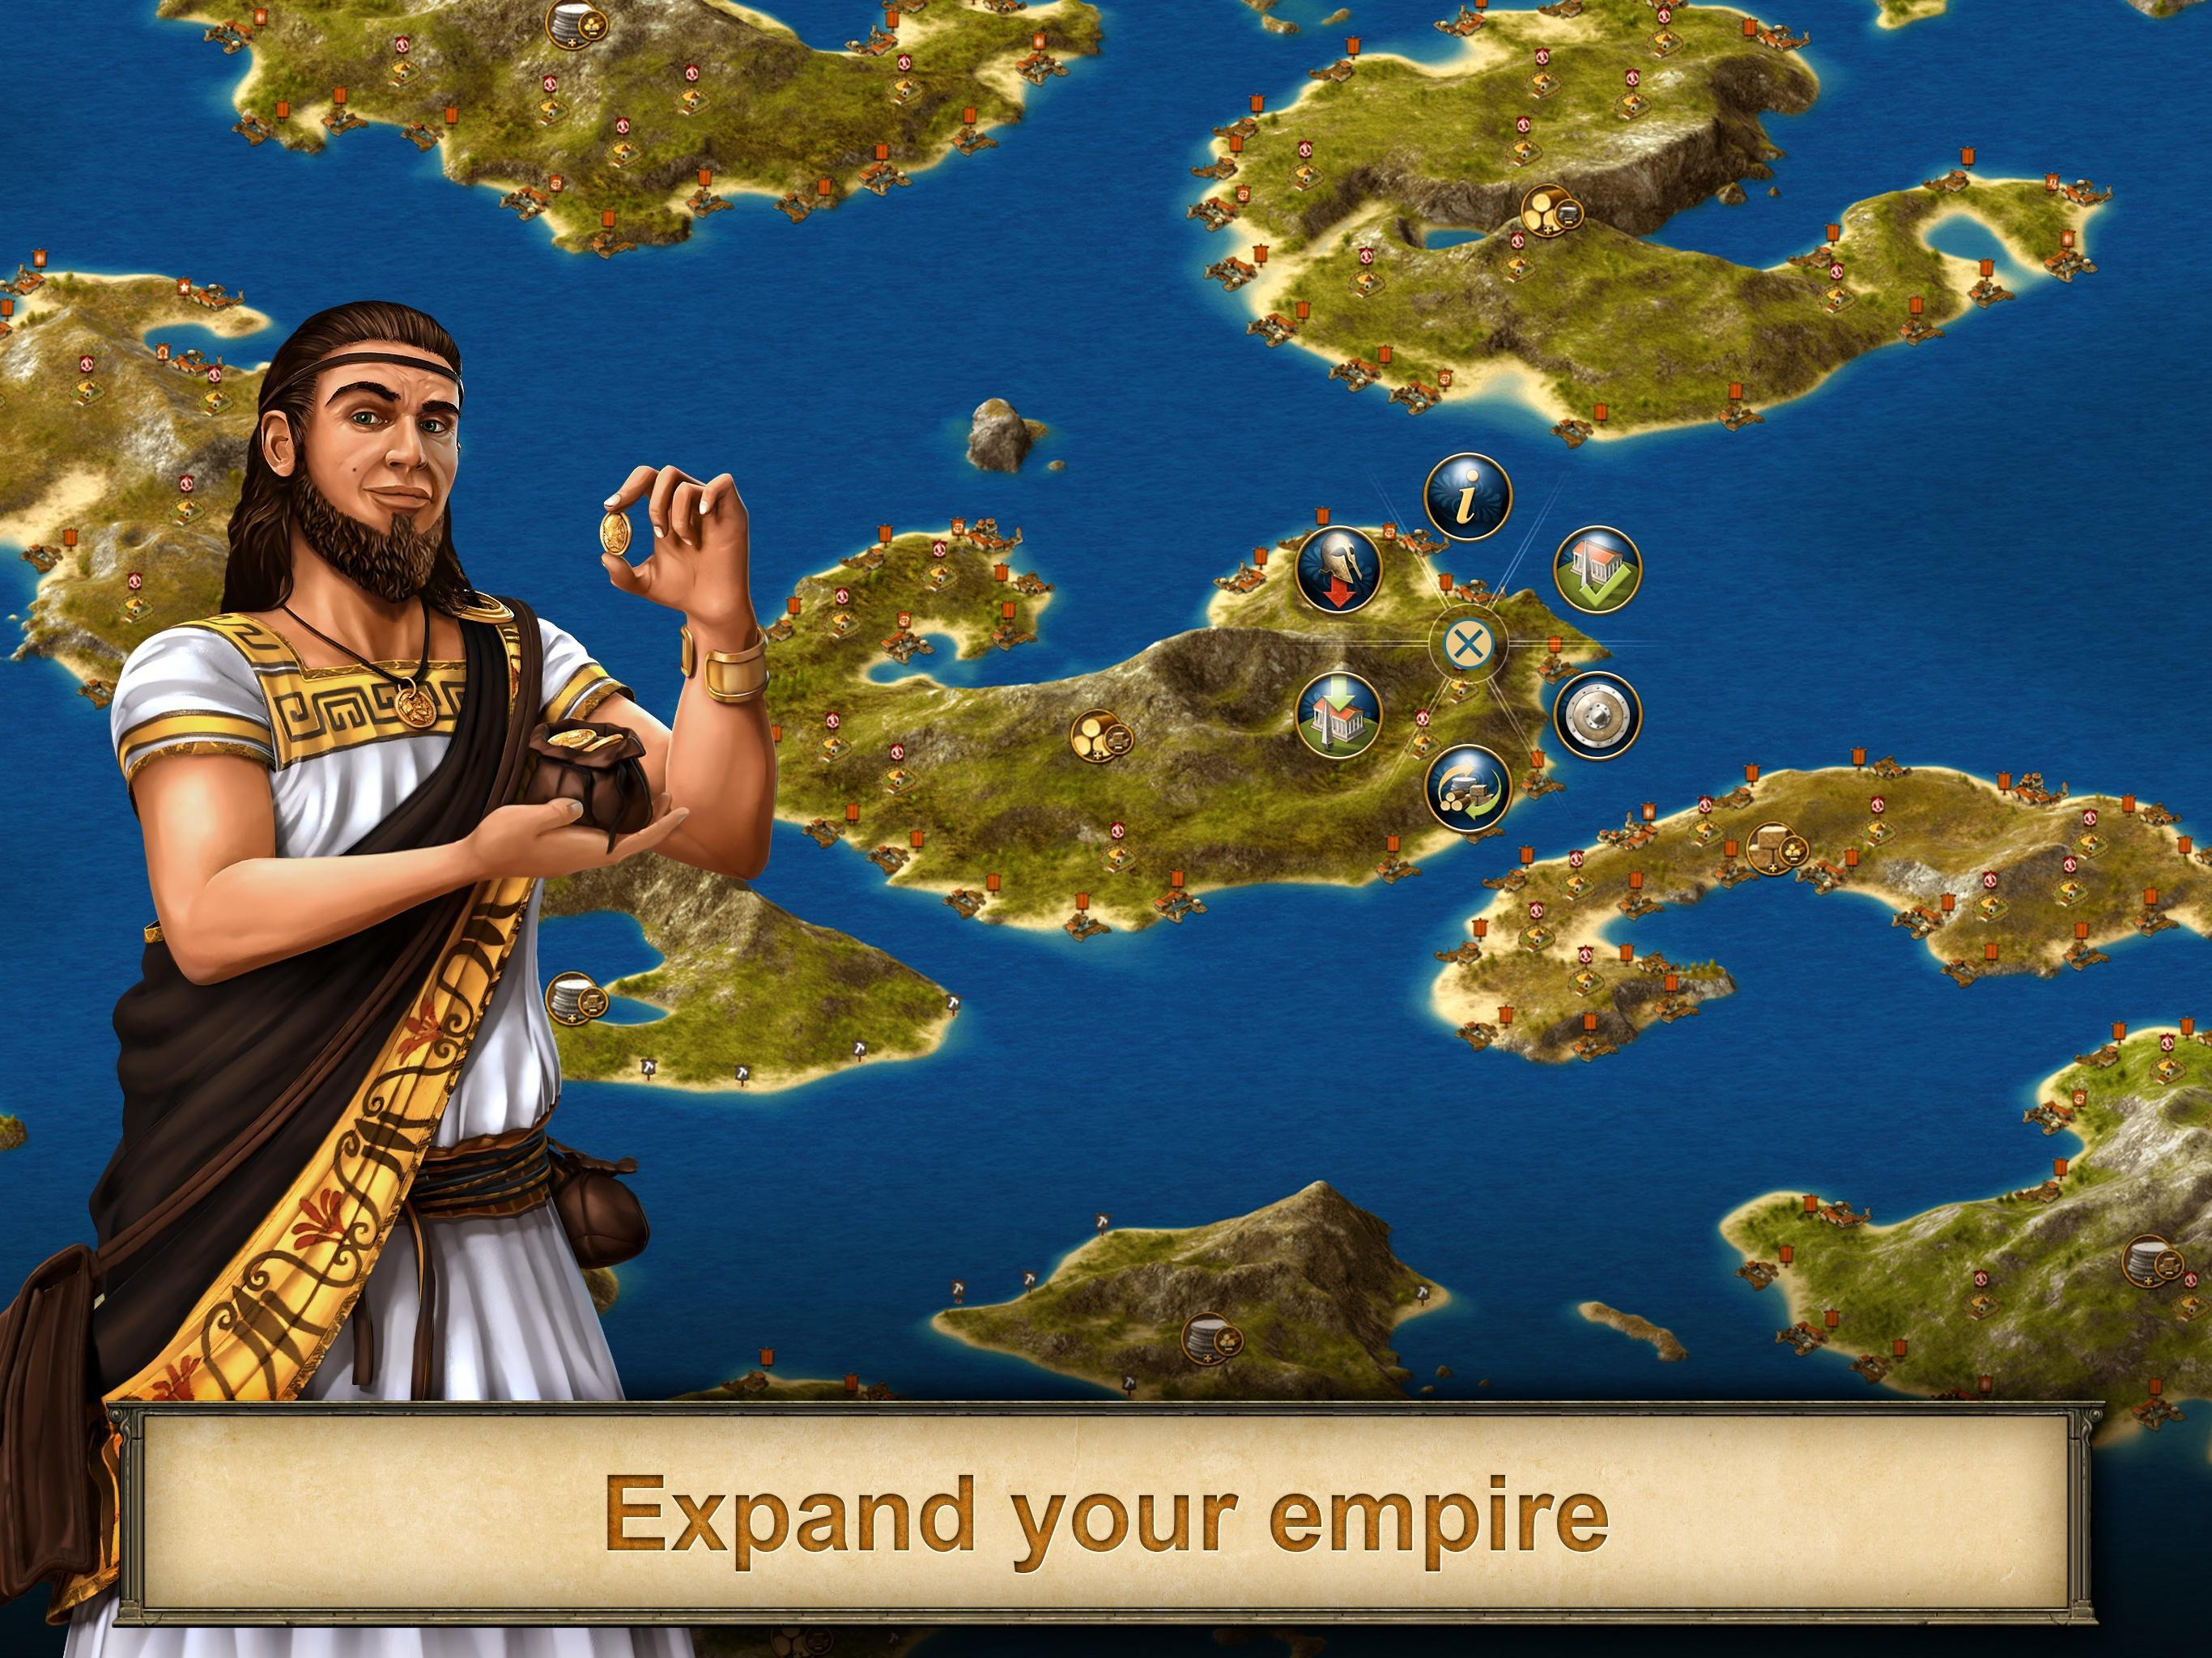 Grepolis for Android   APK Download 2732x2048